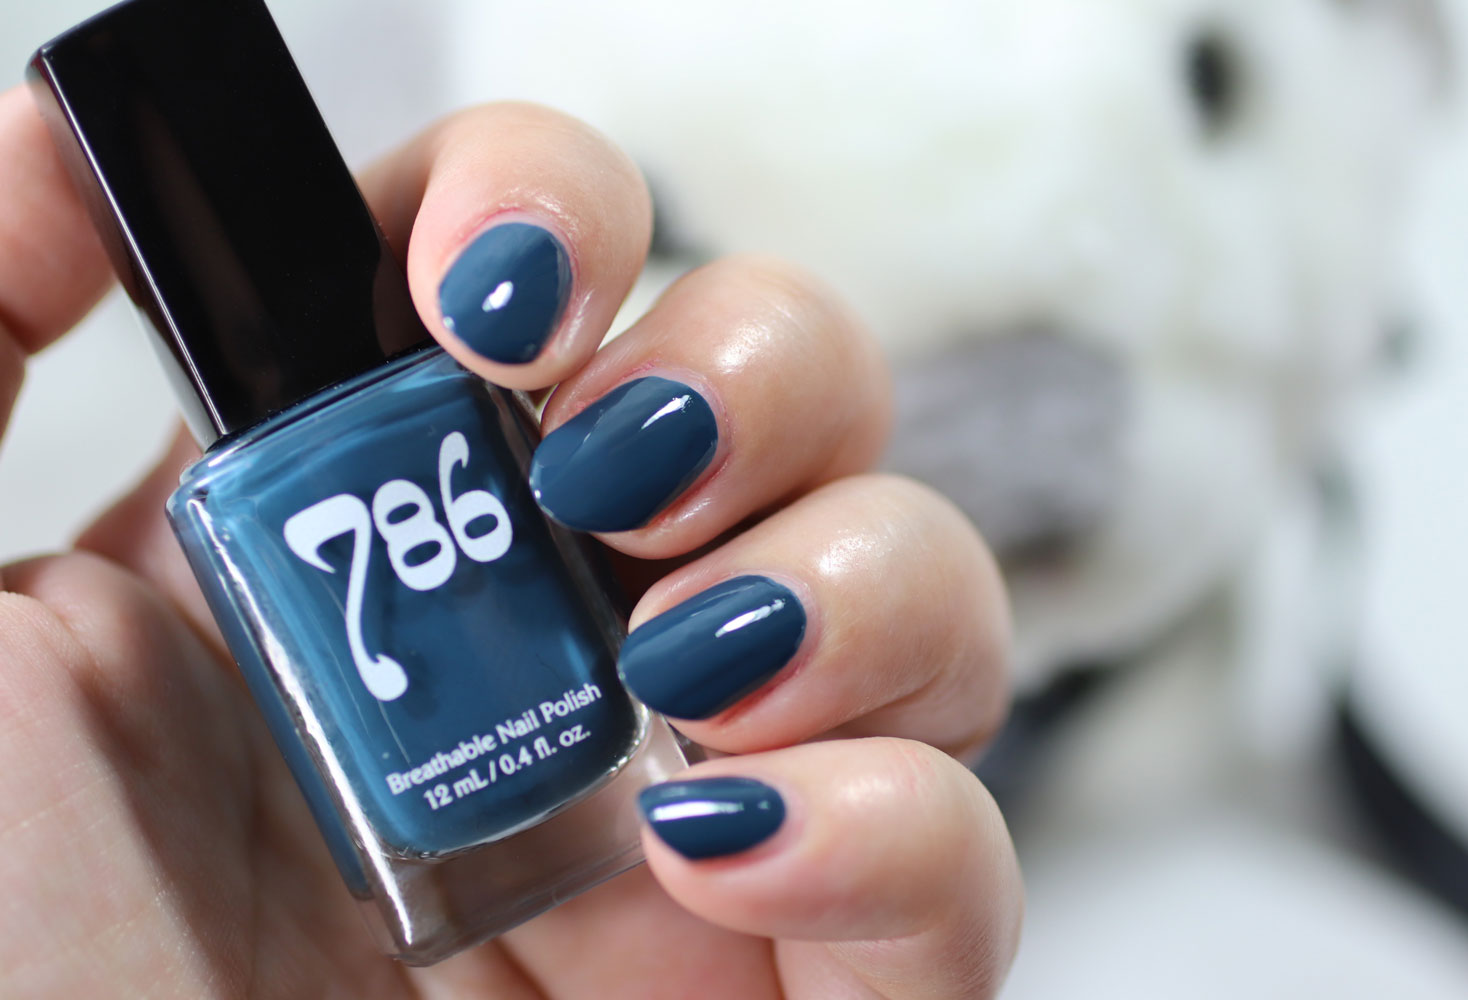 786 Cosmetics Breathable Cruelty Free and Vegan Nail Polish Swatch - Chefchaouen